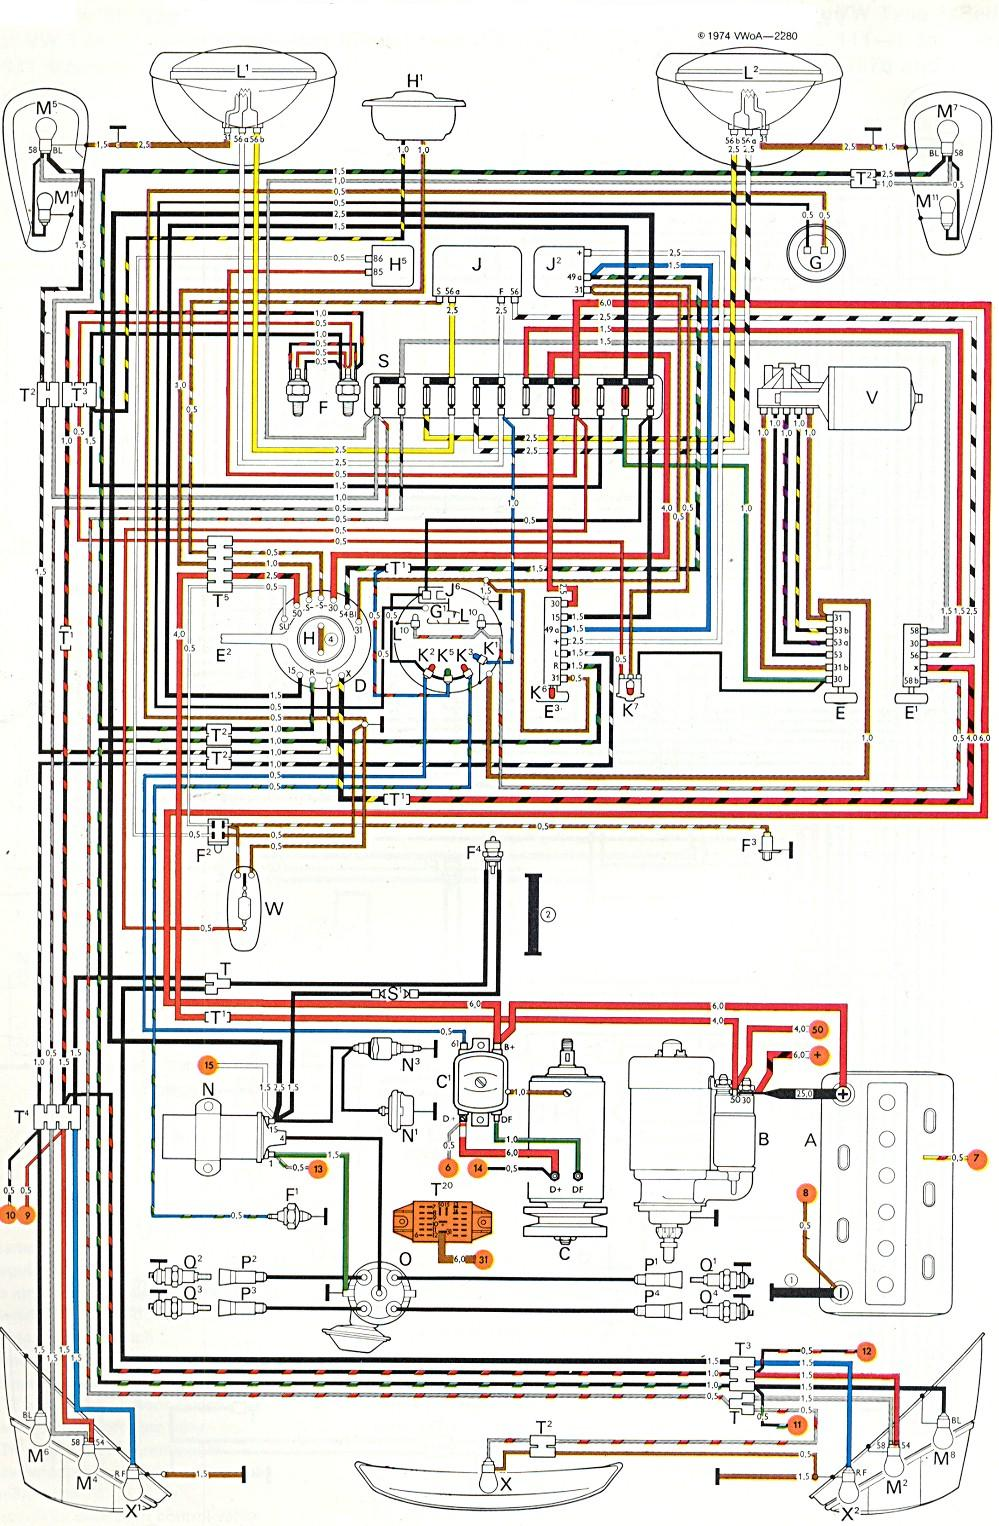 hight resolution of 1973 vw bus wiring harness wiring diagrams tar 58 vw bus wiring harness